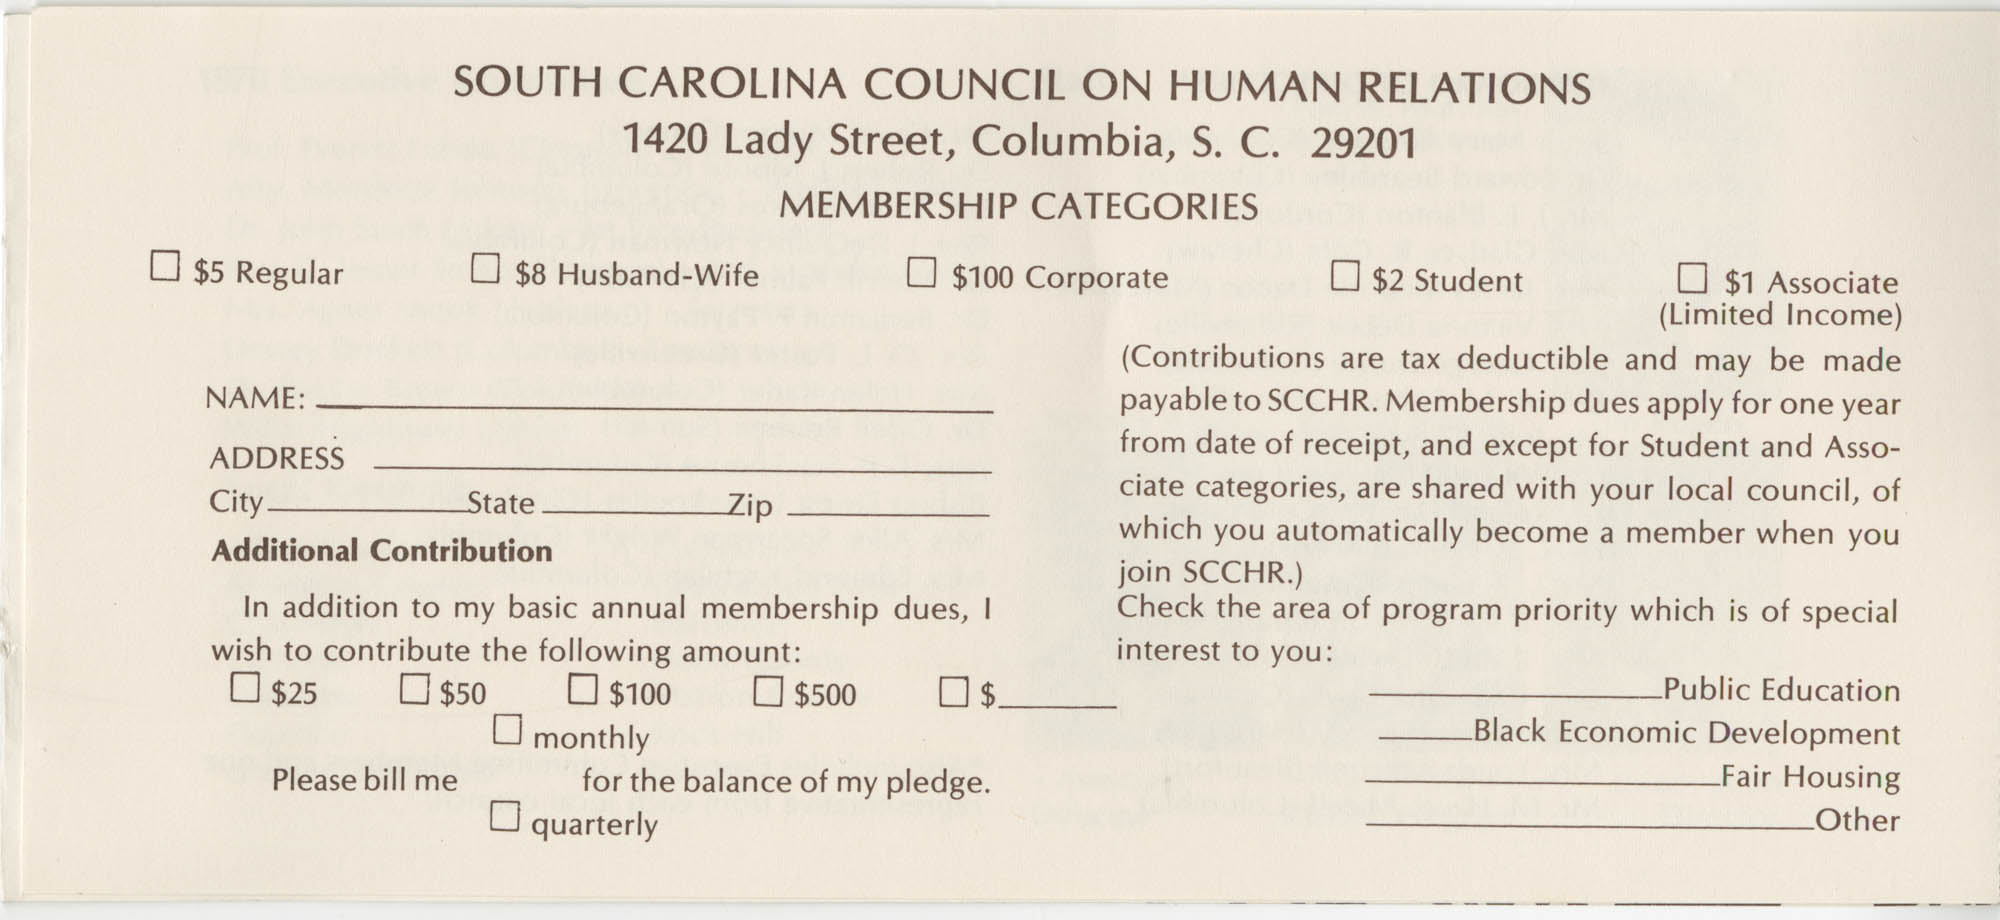 South Carolina Council on Human Relations Pamphlet, Page 12